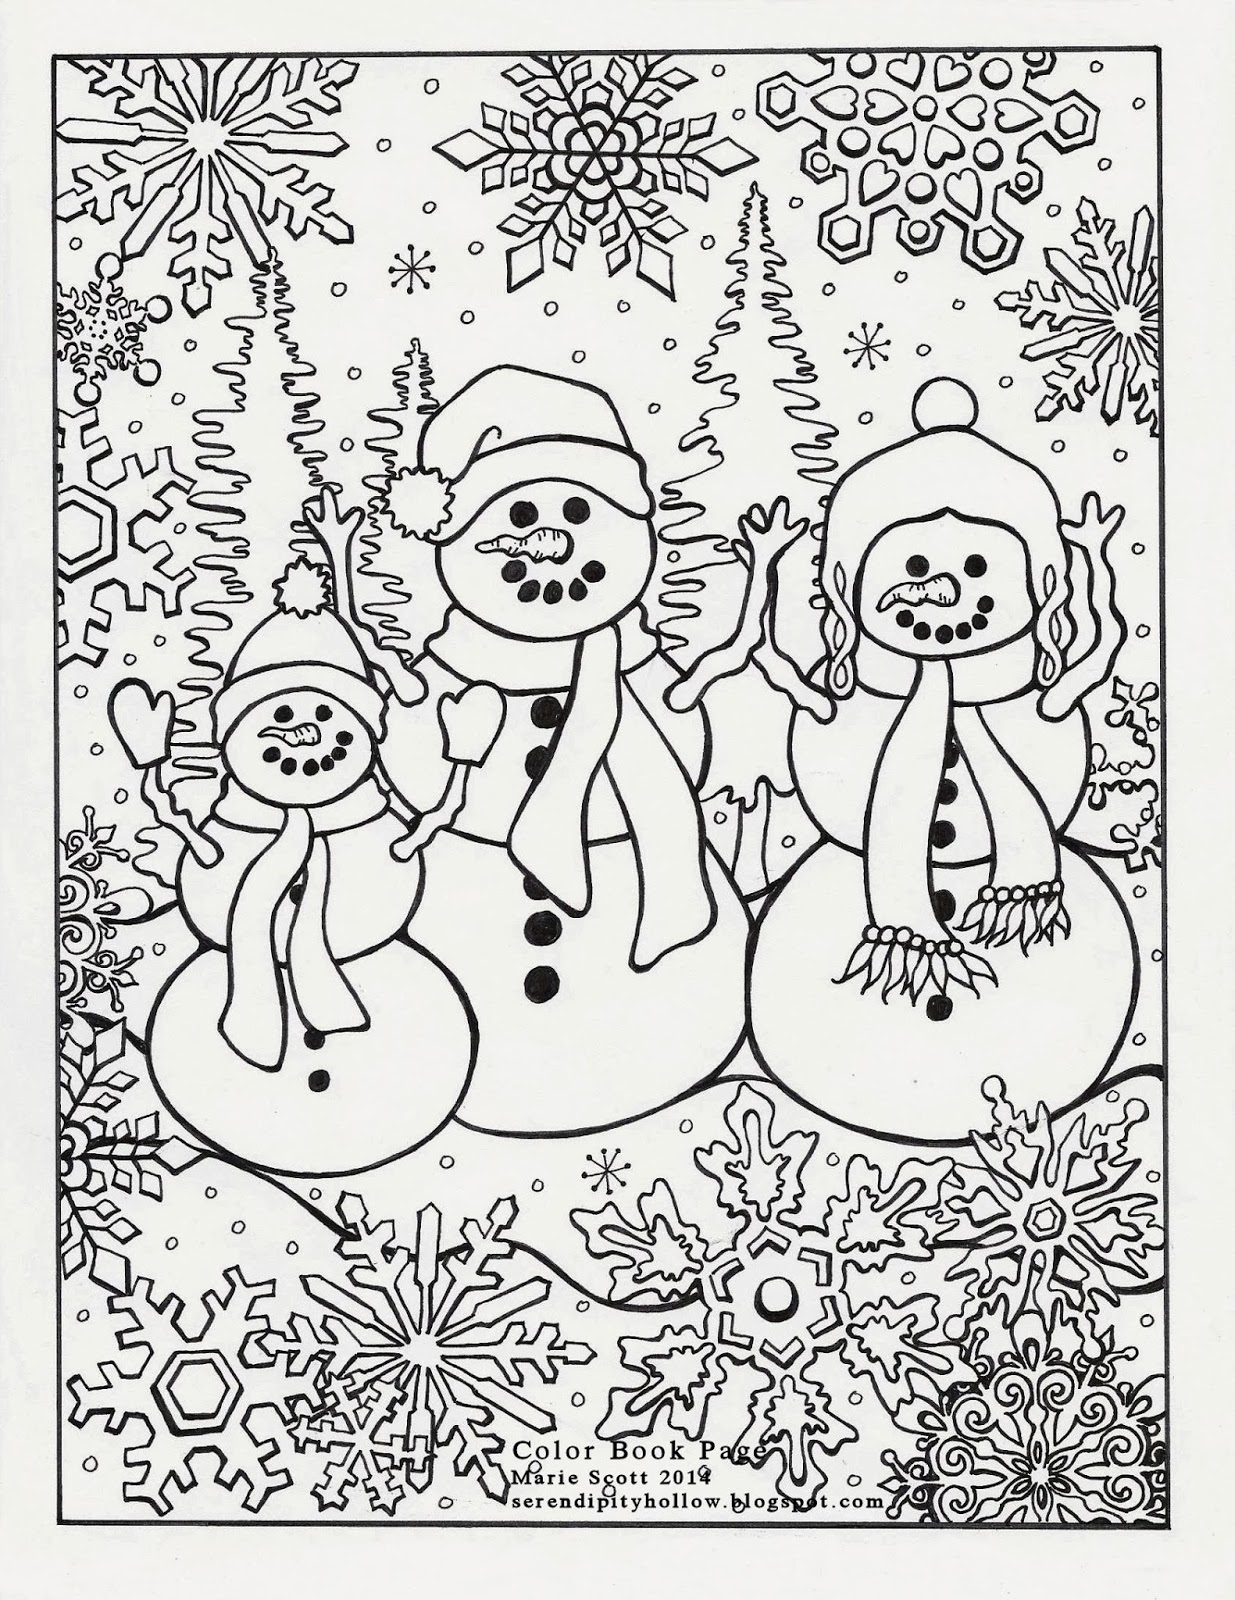 Serendipity Hollow: Winter Coloring Book Page | winter coloring pages for adults